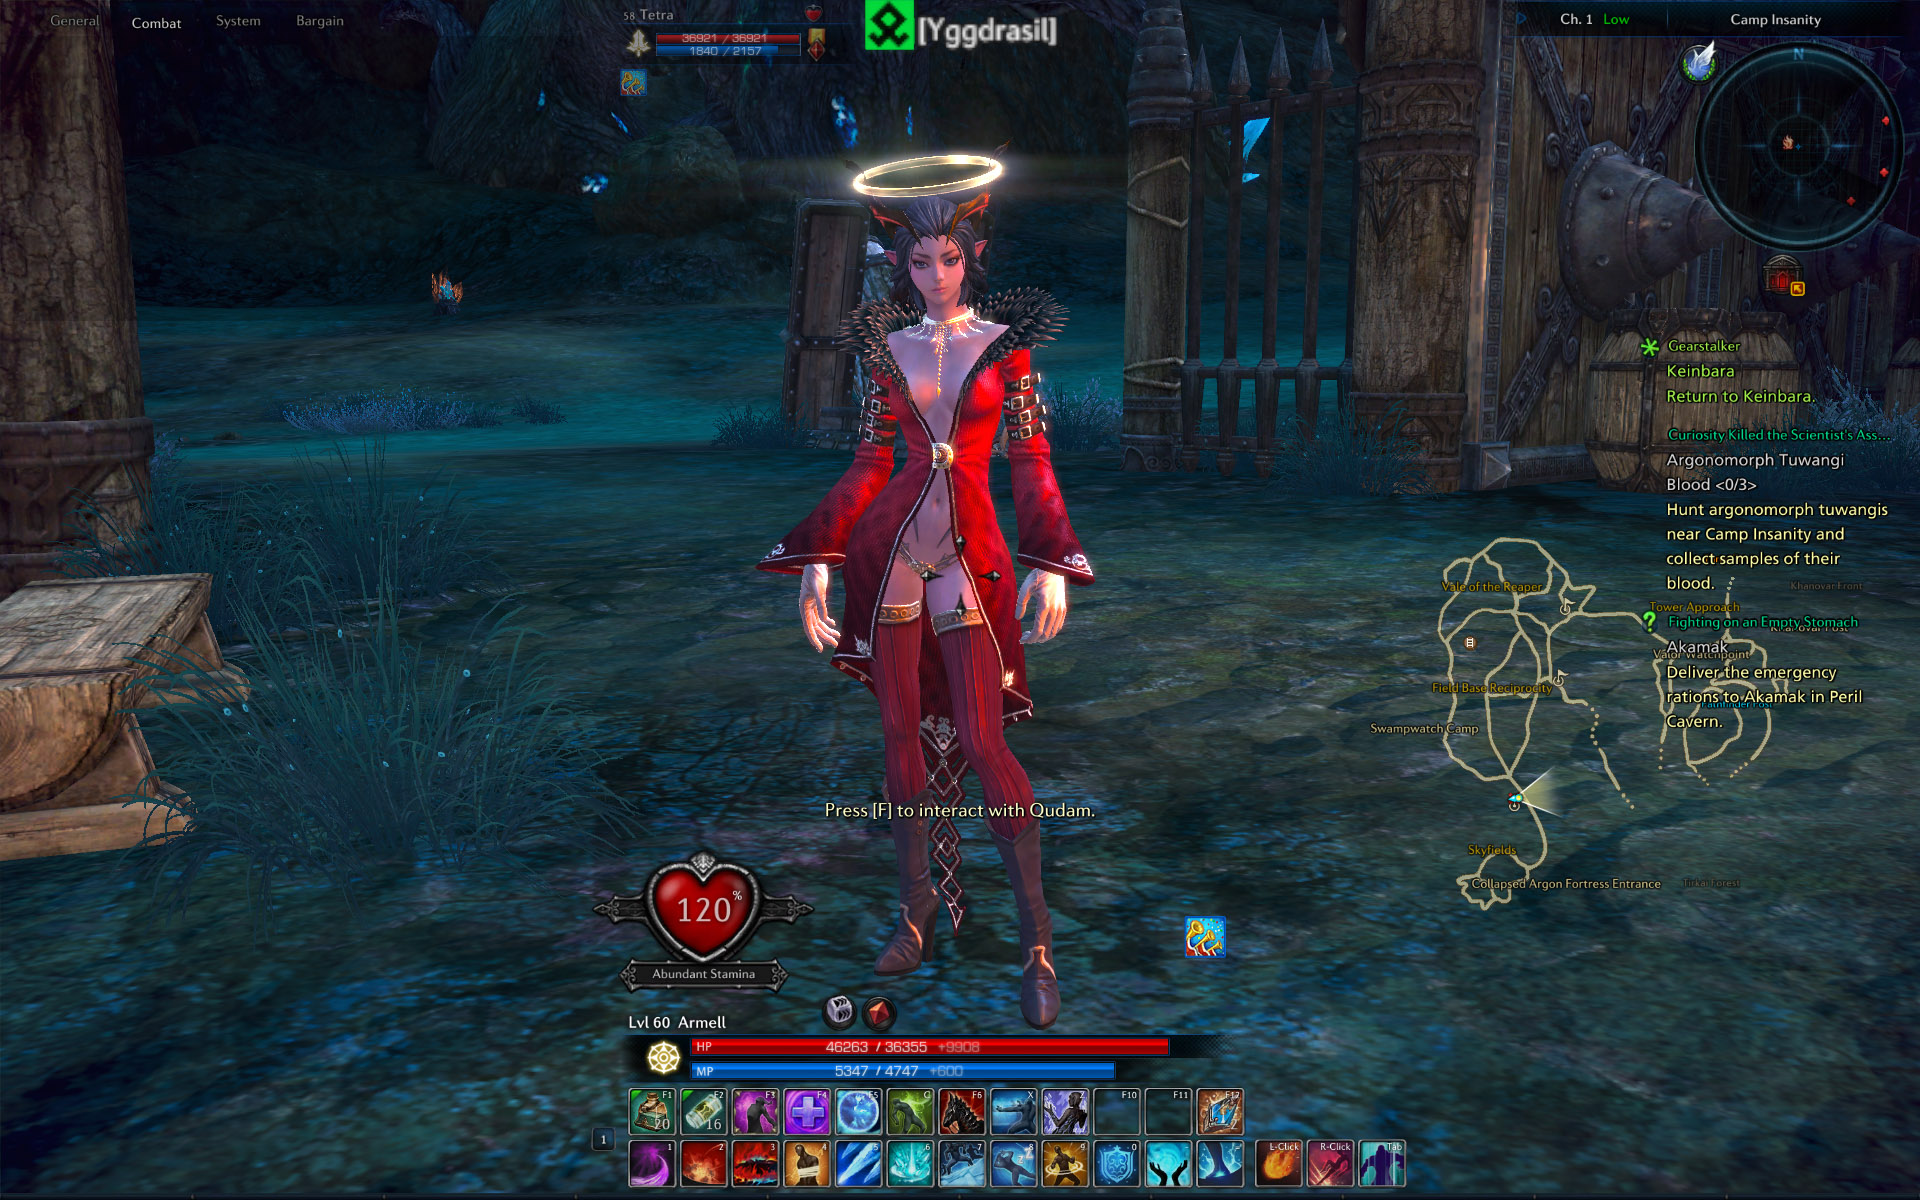 klain games opening gameplay trailer experience preview online media removed heres tera